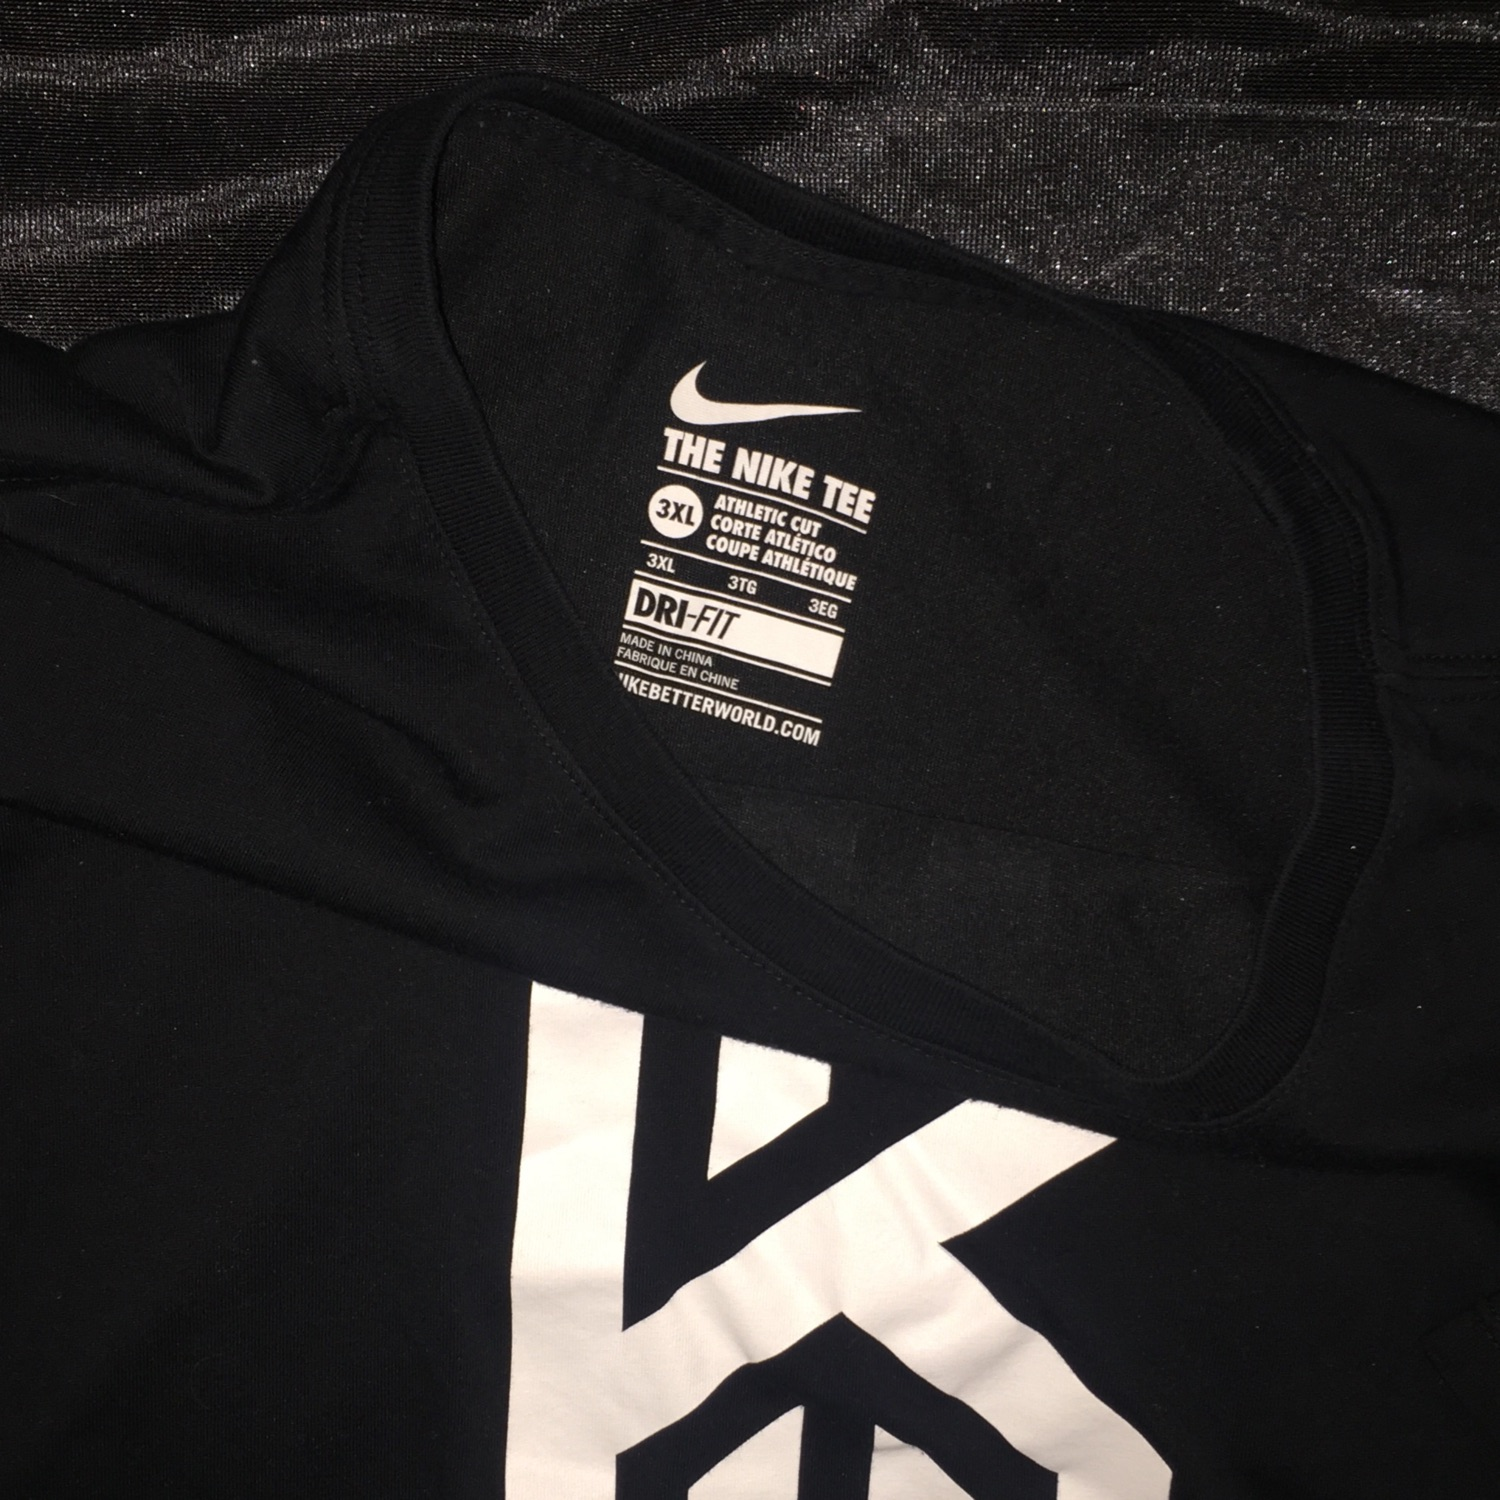 Nike Kyrie Irving Black Shirt